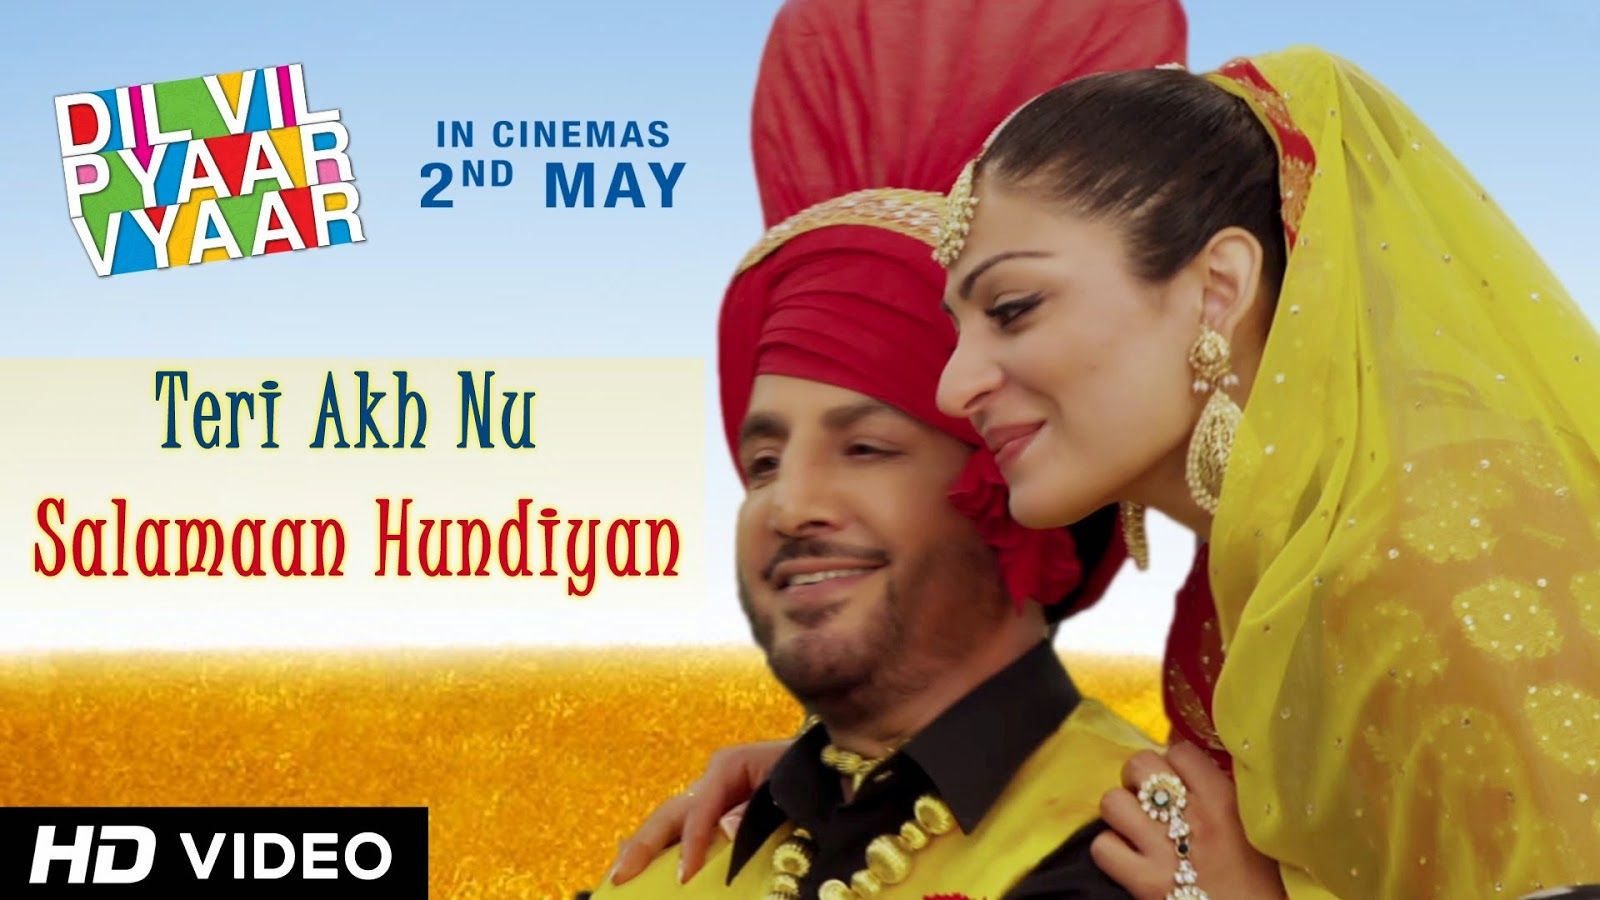 TERI AKH NU SALAMAAN HUNDIYAN SONG LYRICS / VIDEO | GURDAS MAAN | DVPV